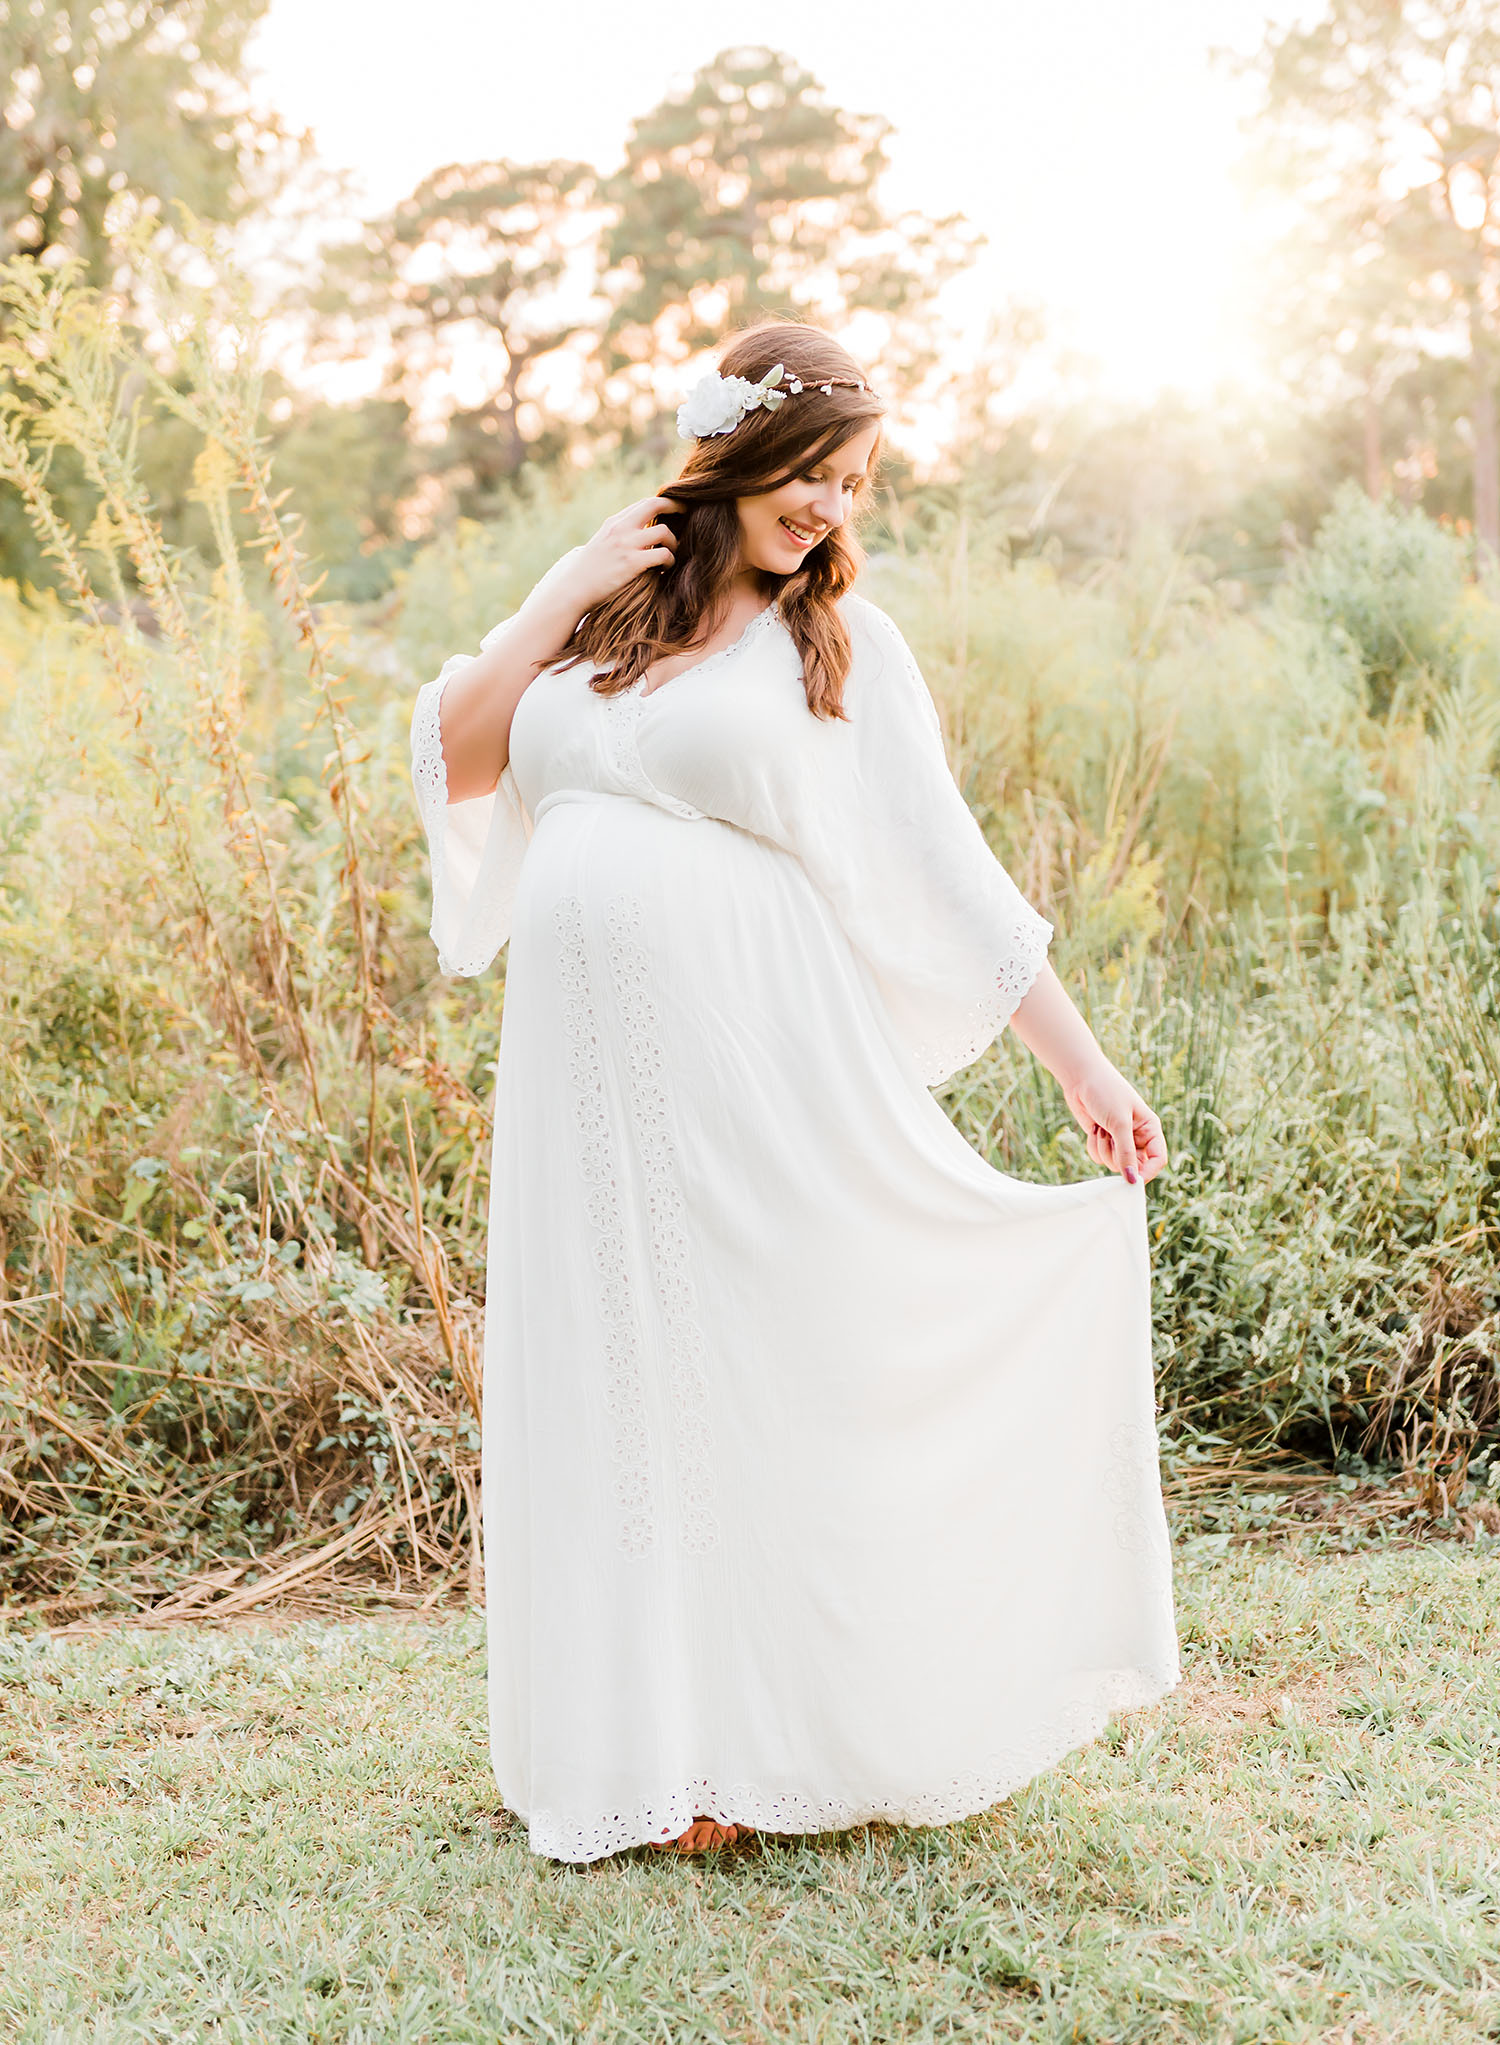 cotton-field-pictures-cool-maternity-photography-jf-gregory-park-richmond-hill-ga3.jpg